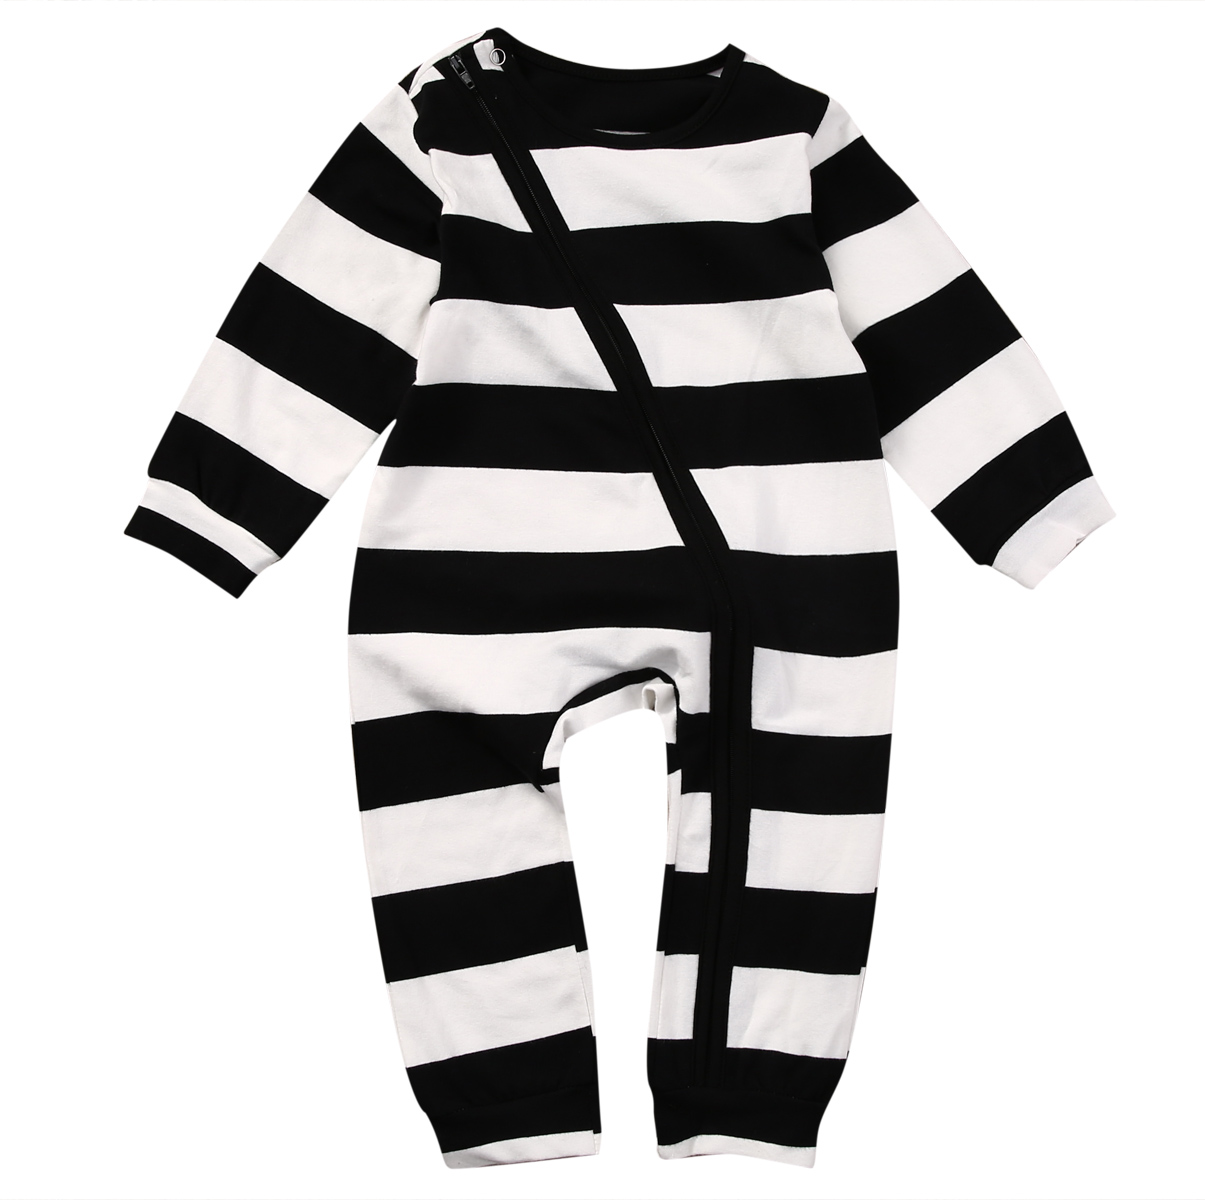 Pudcoco Baby Boys Clothes Zip Up Sleeper Long Sleeve Striped Infant Newborn Sleep and Play Suit lucia tucci потолочная люстра lucia tucci lugo 142 3 r40 white